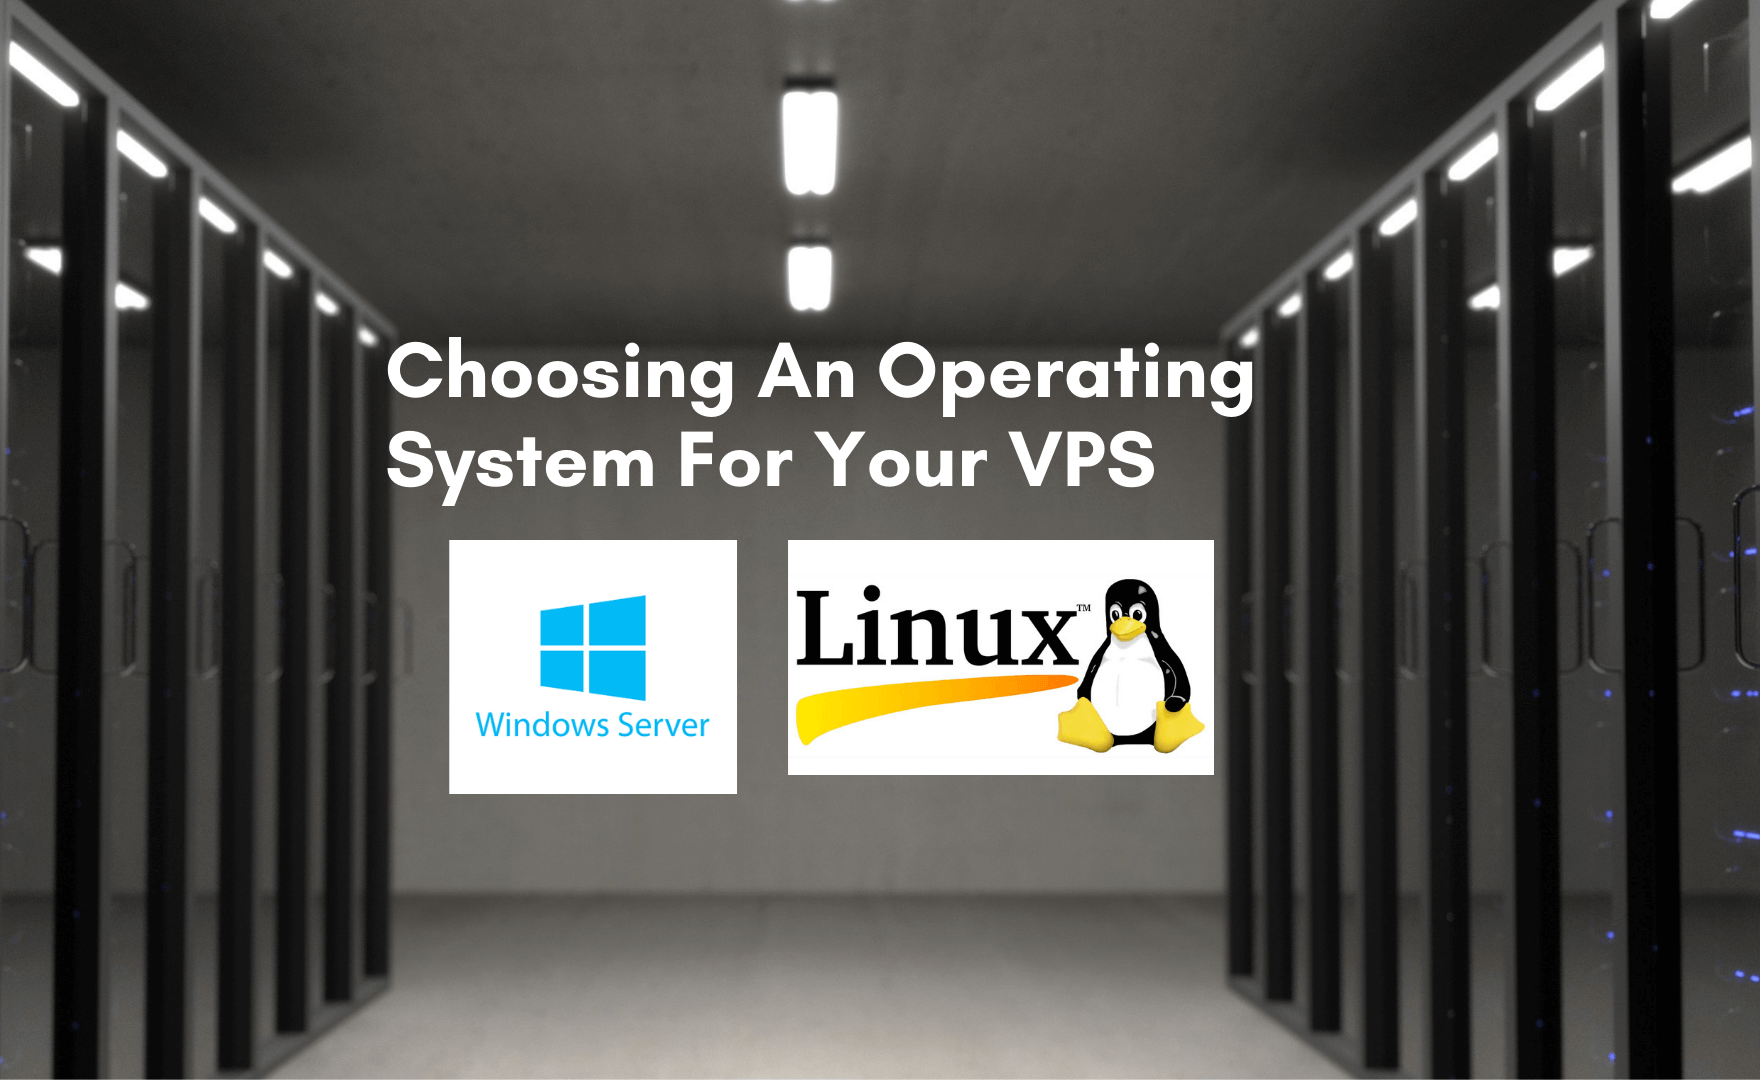 Choosing-An-Operating-System-For-Your-VPS-1